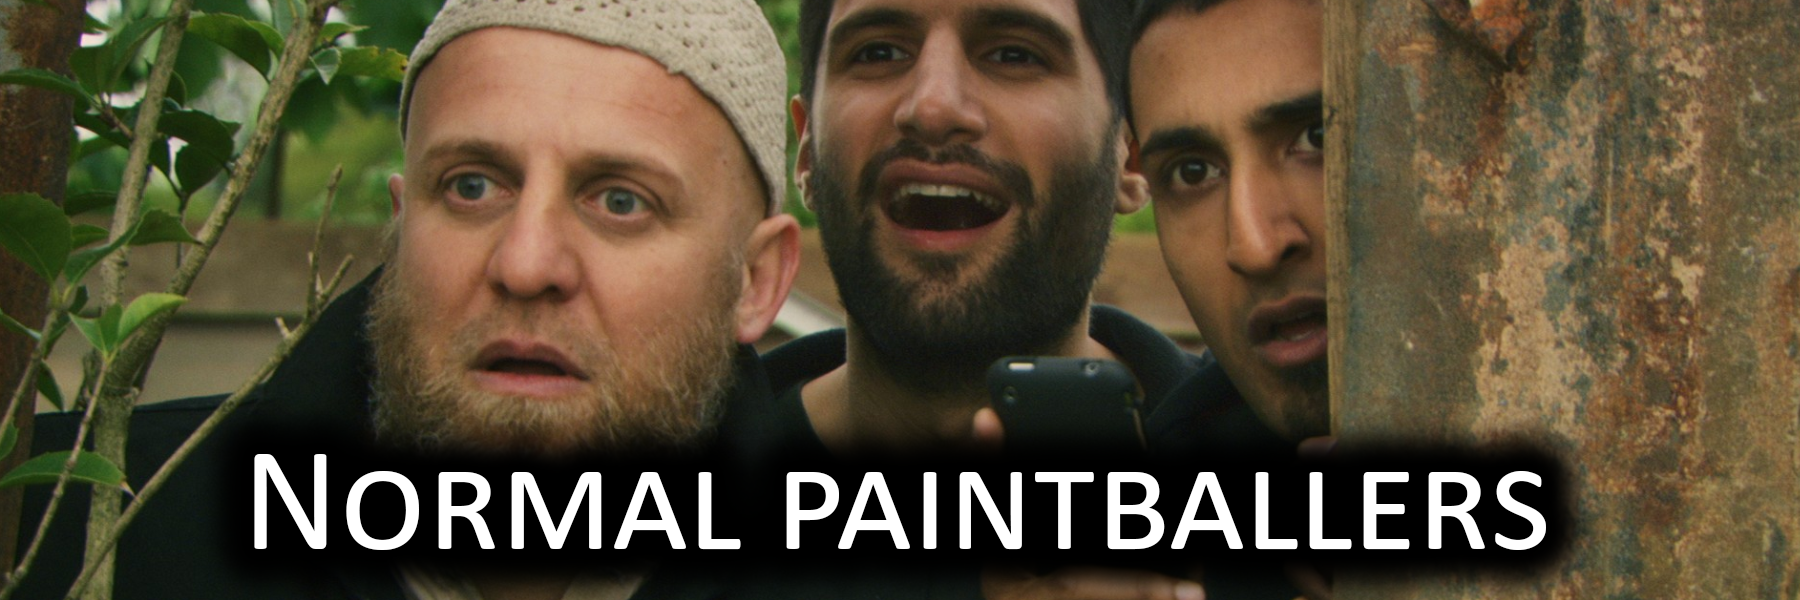 Normal paintball player